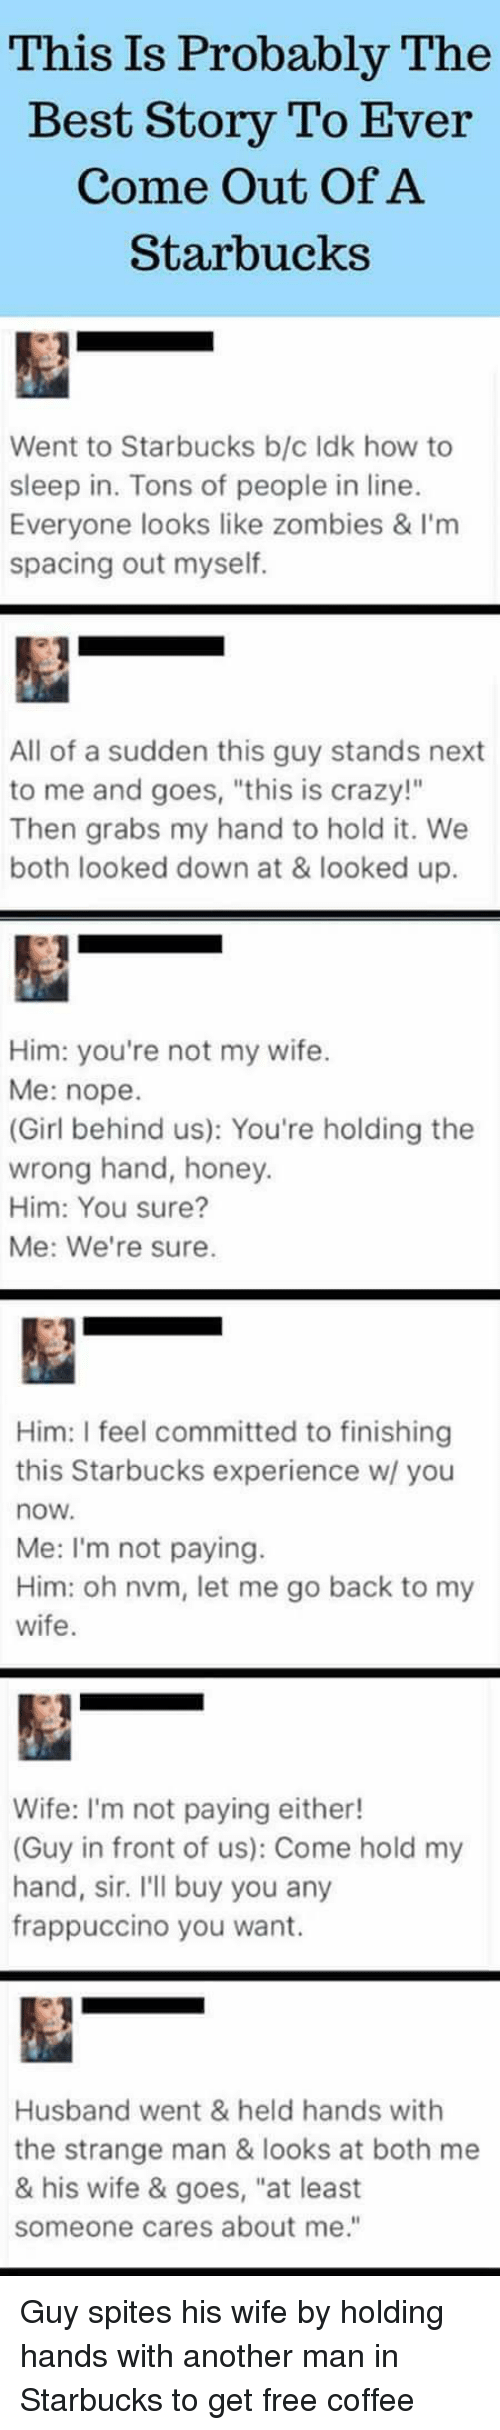 letting your wife sleep another man